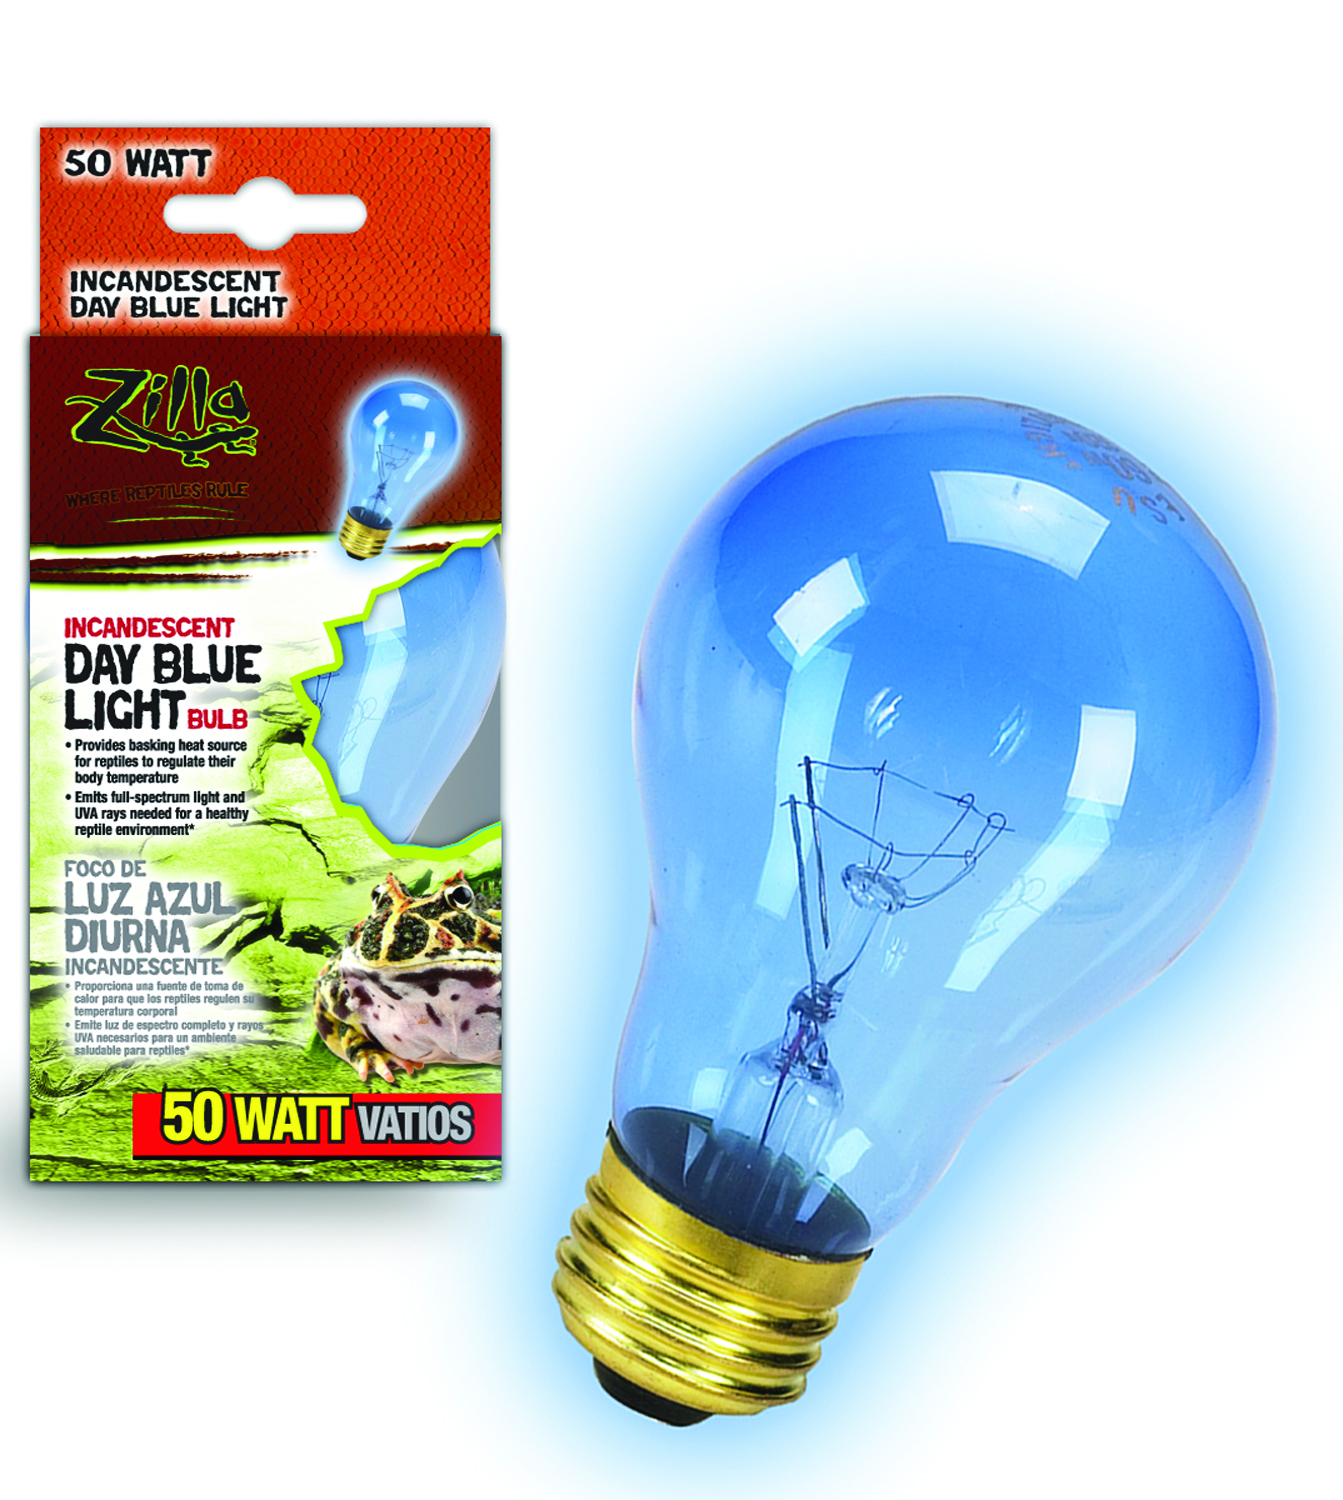 DAY BLUE INCANDESCENT BULB